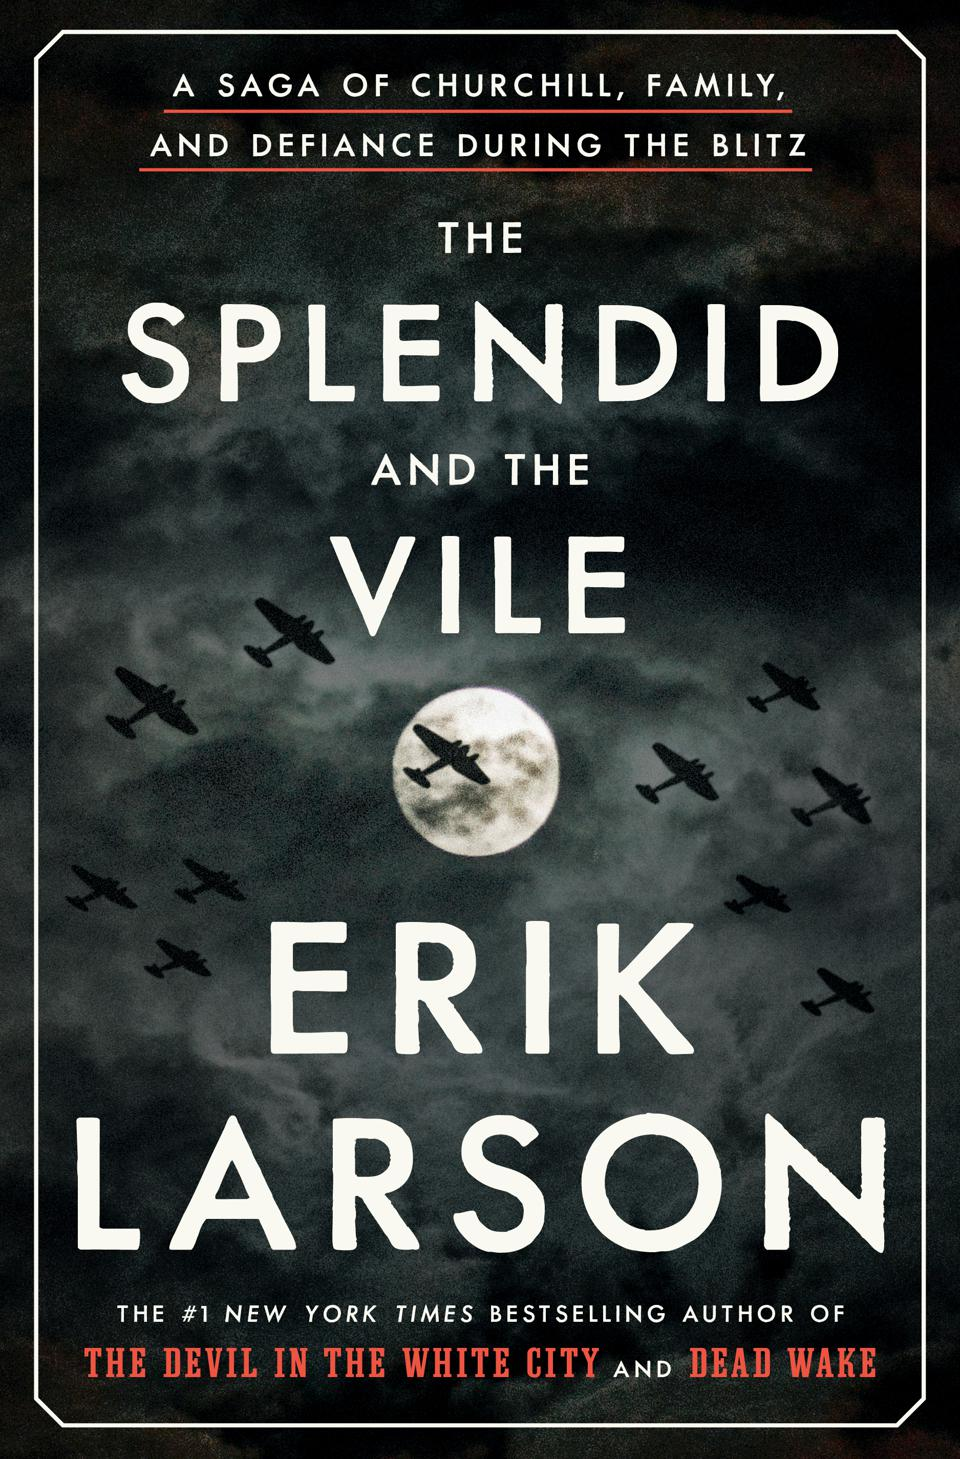 the splendid and vile erik larson churchill blitz crown book cover